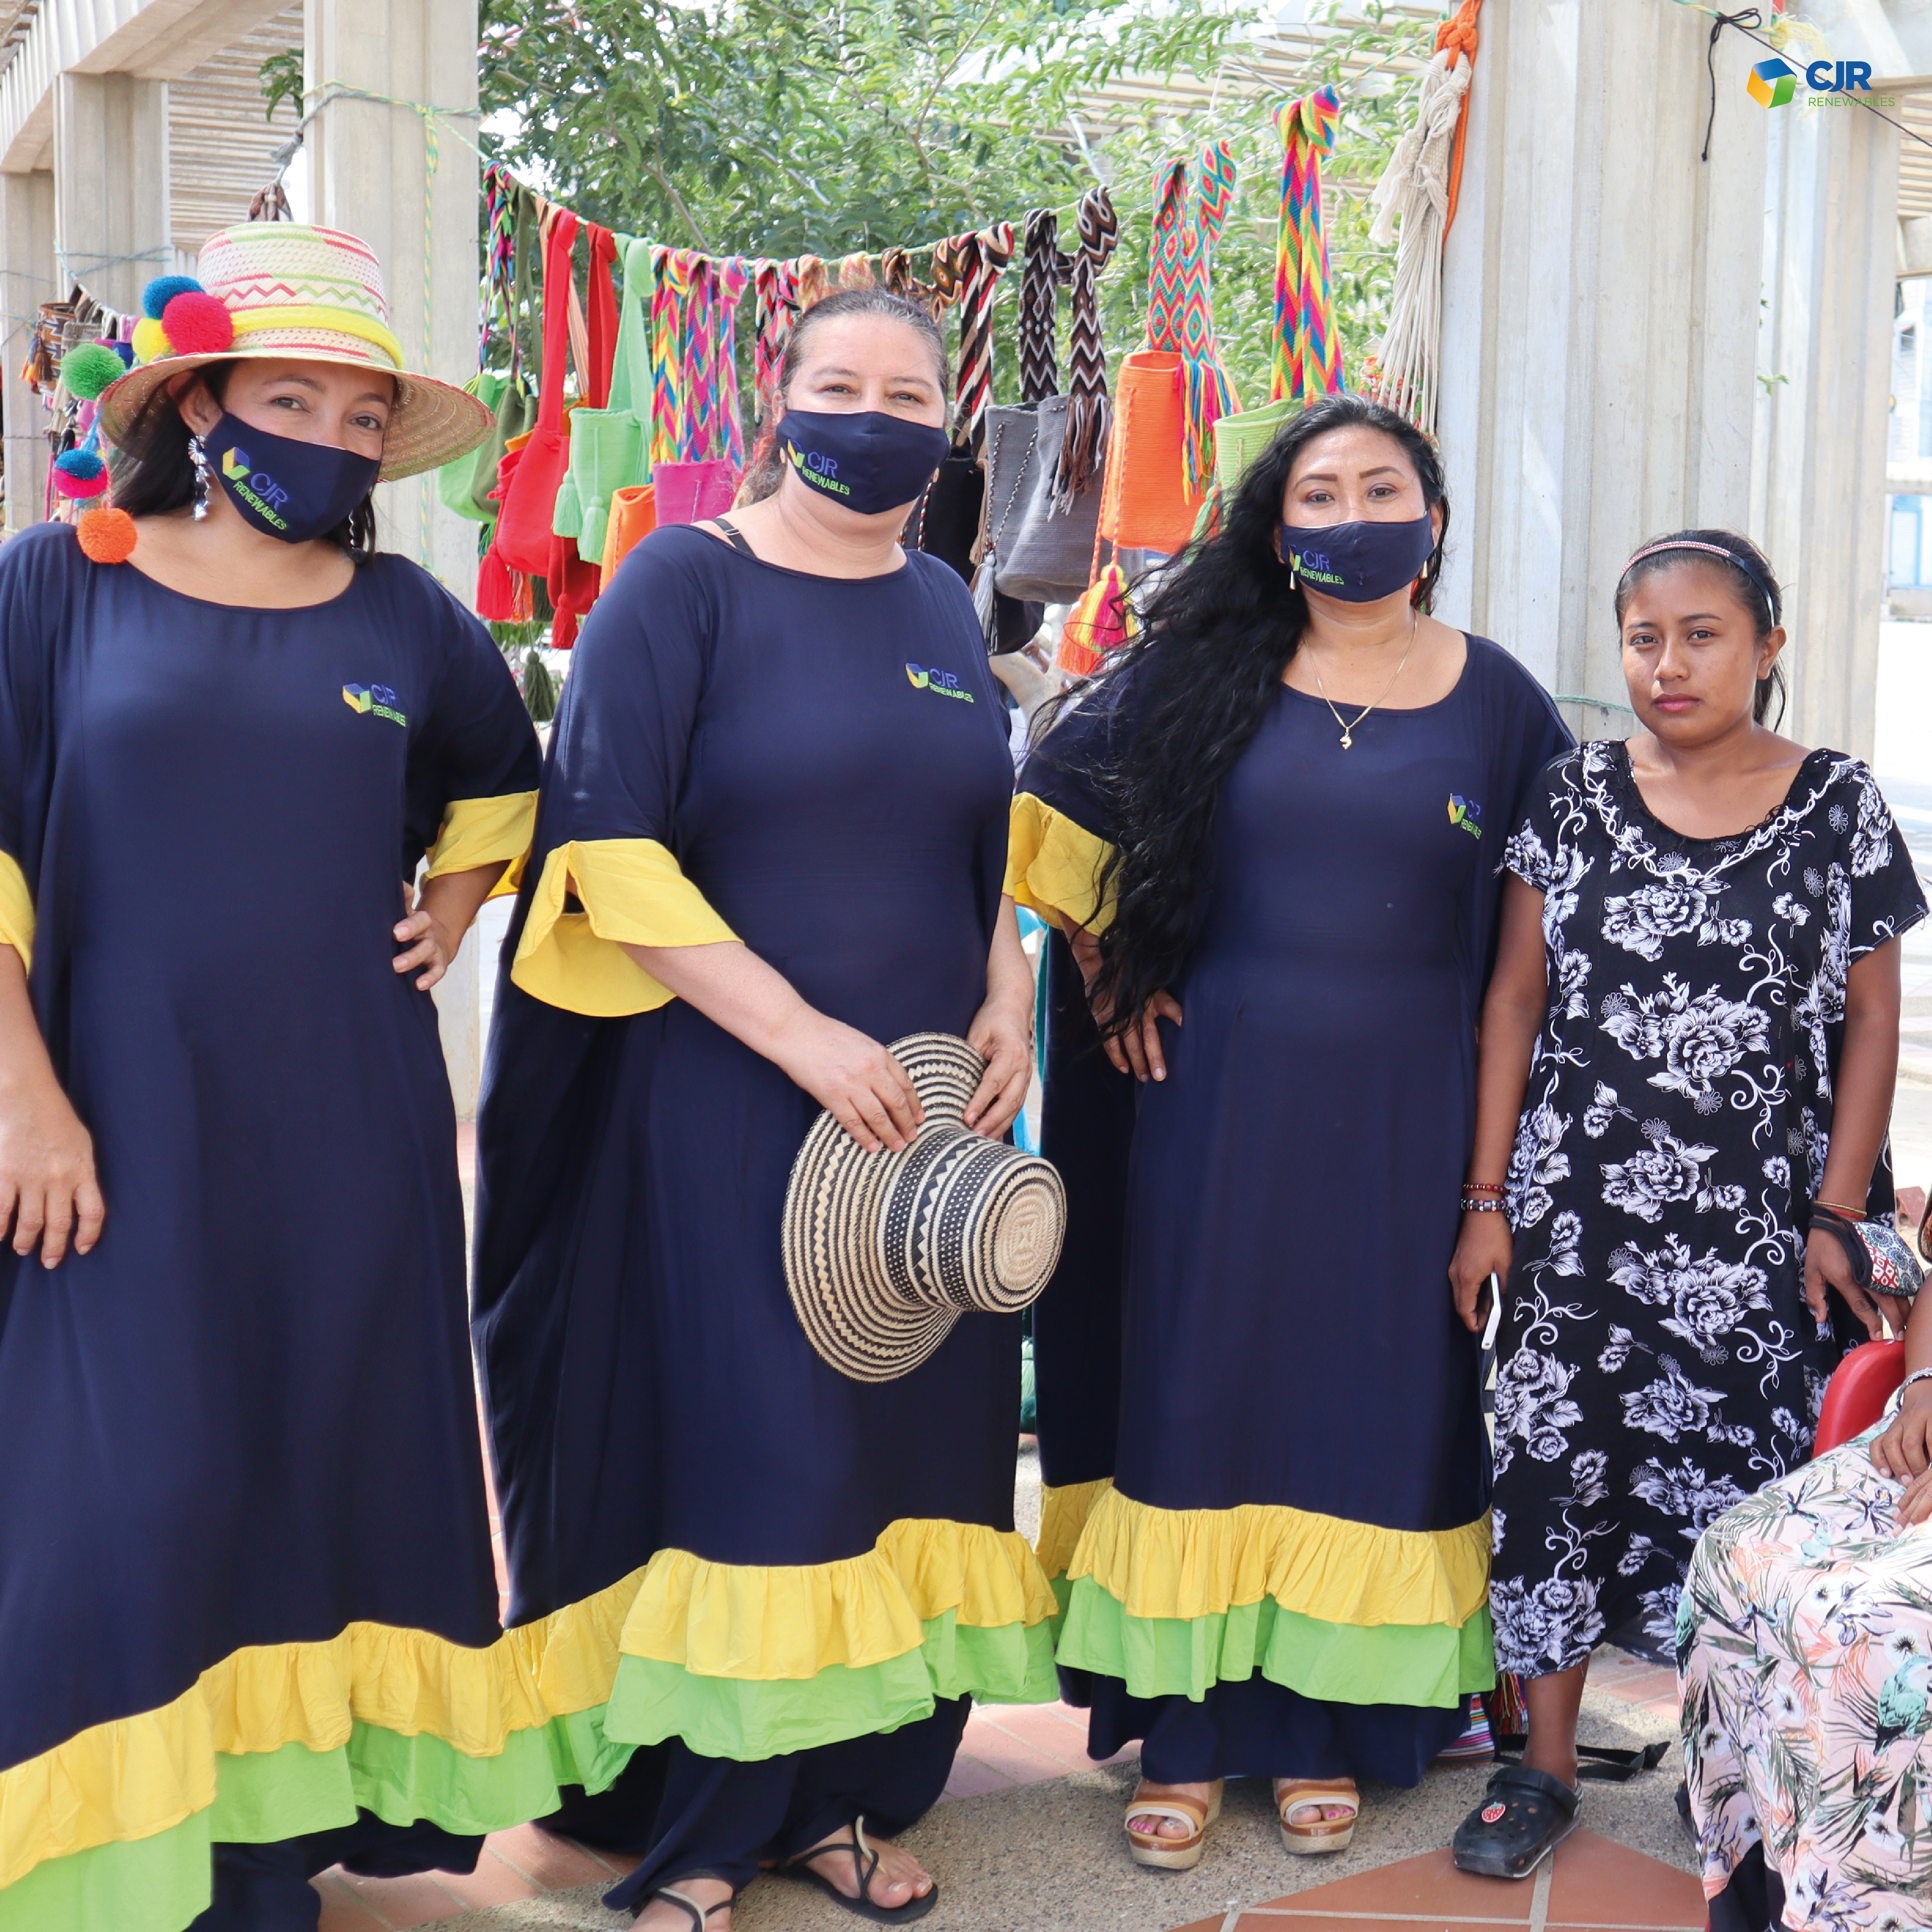 CJR Renewables participates in Colombian community festive day 0